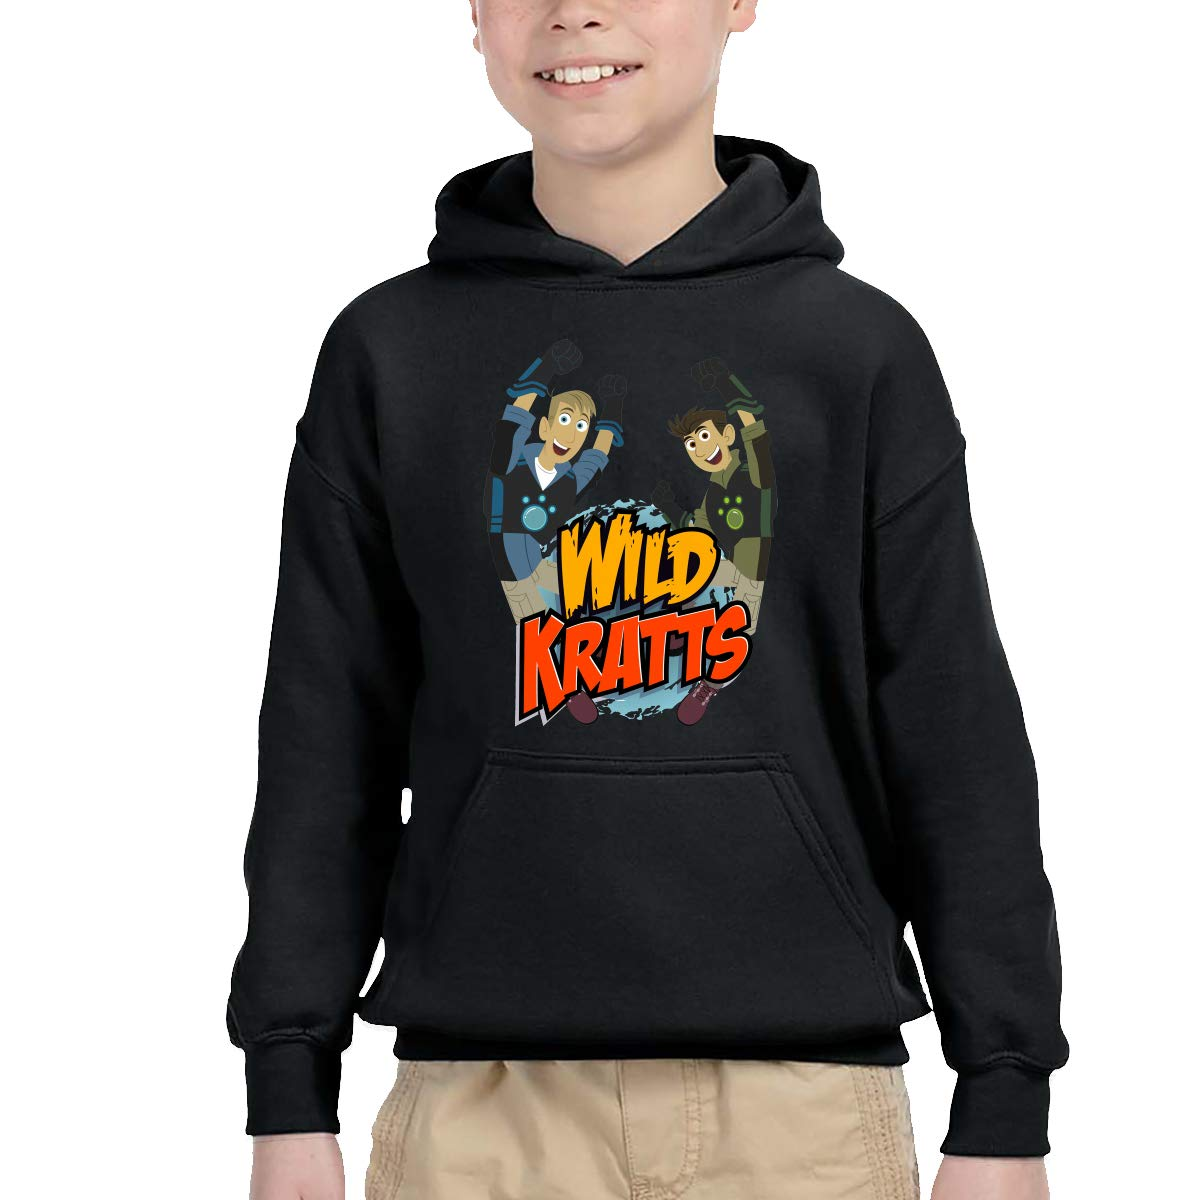 2-6 Year Old Childrens Hooded Pocket Sweater Original Retro Literary Design Wild Kratts Logo Black